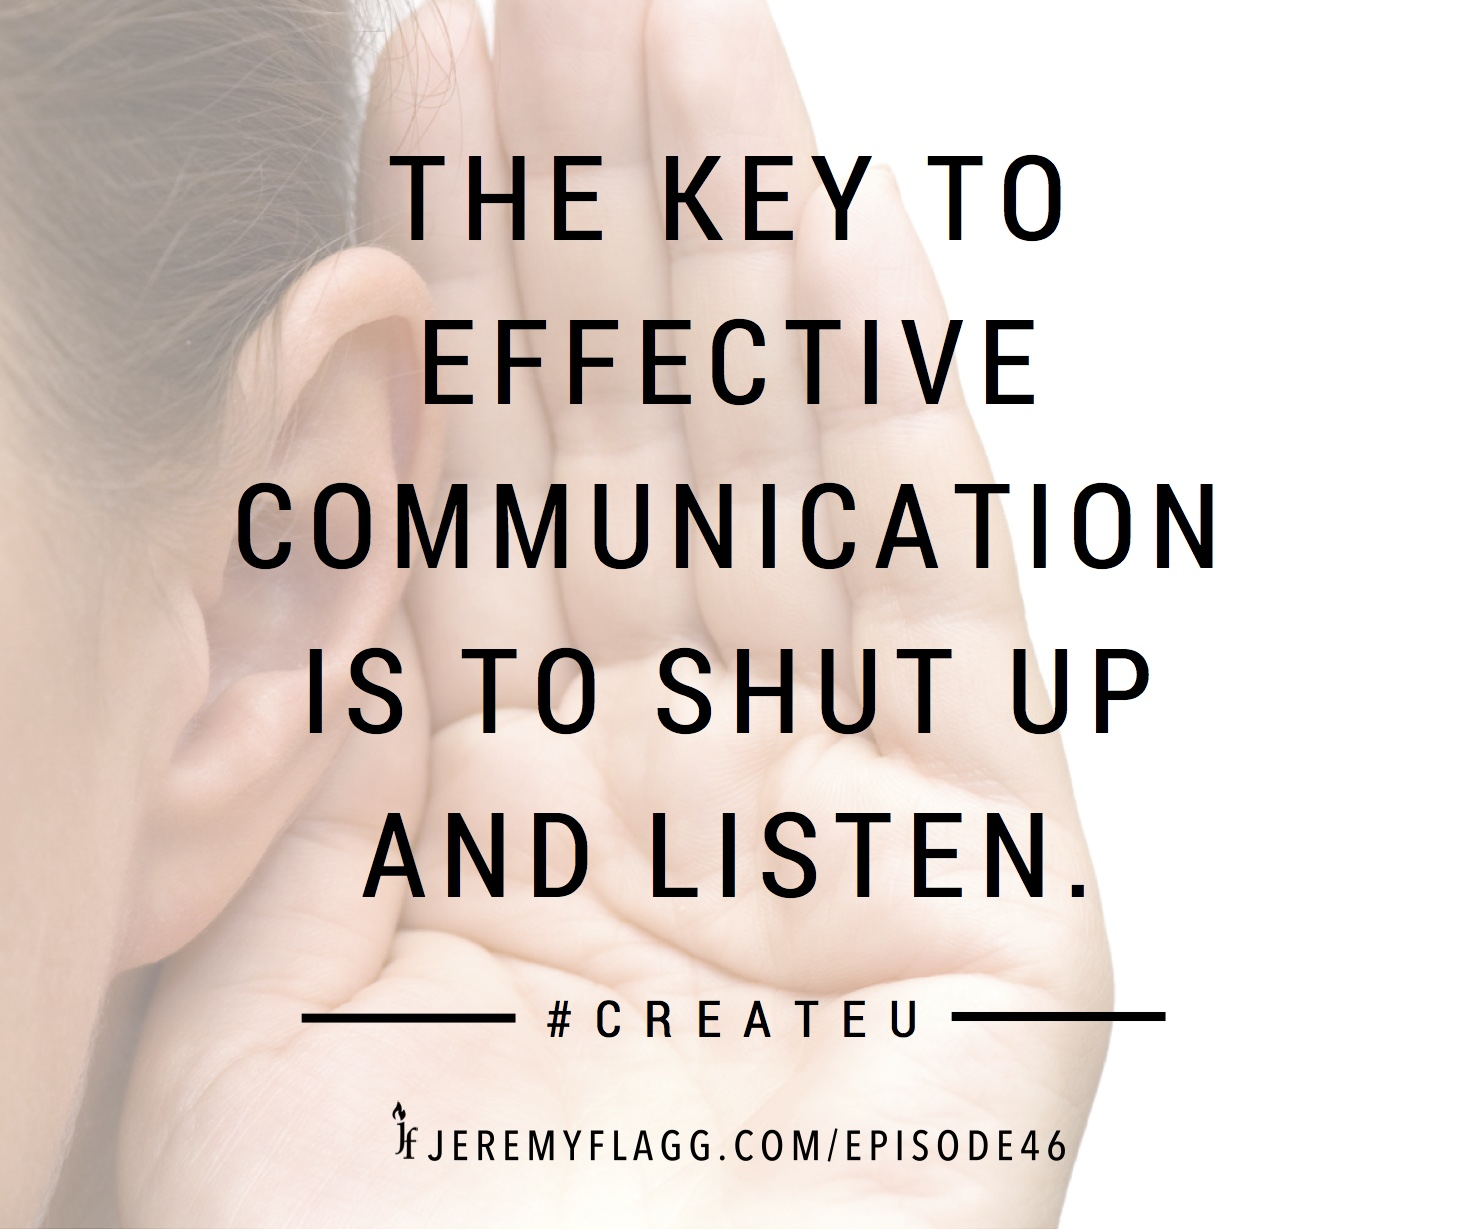 Effective-communication-shut-up-listen-Jeremy-Flagg-quote-FB